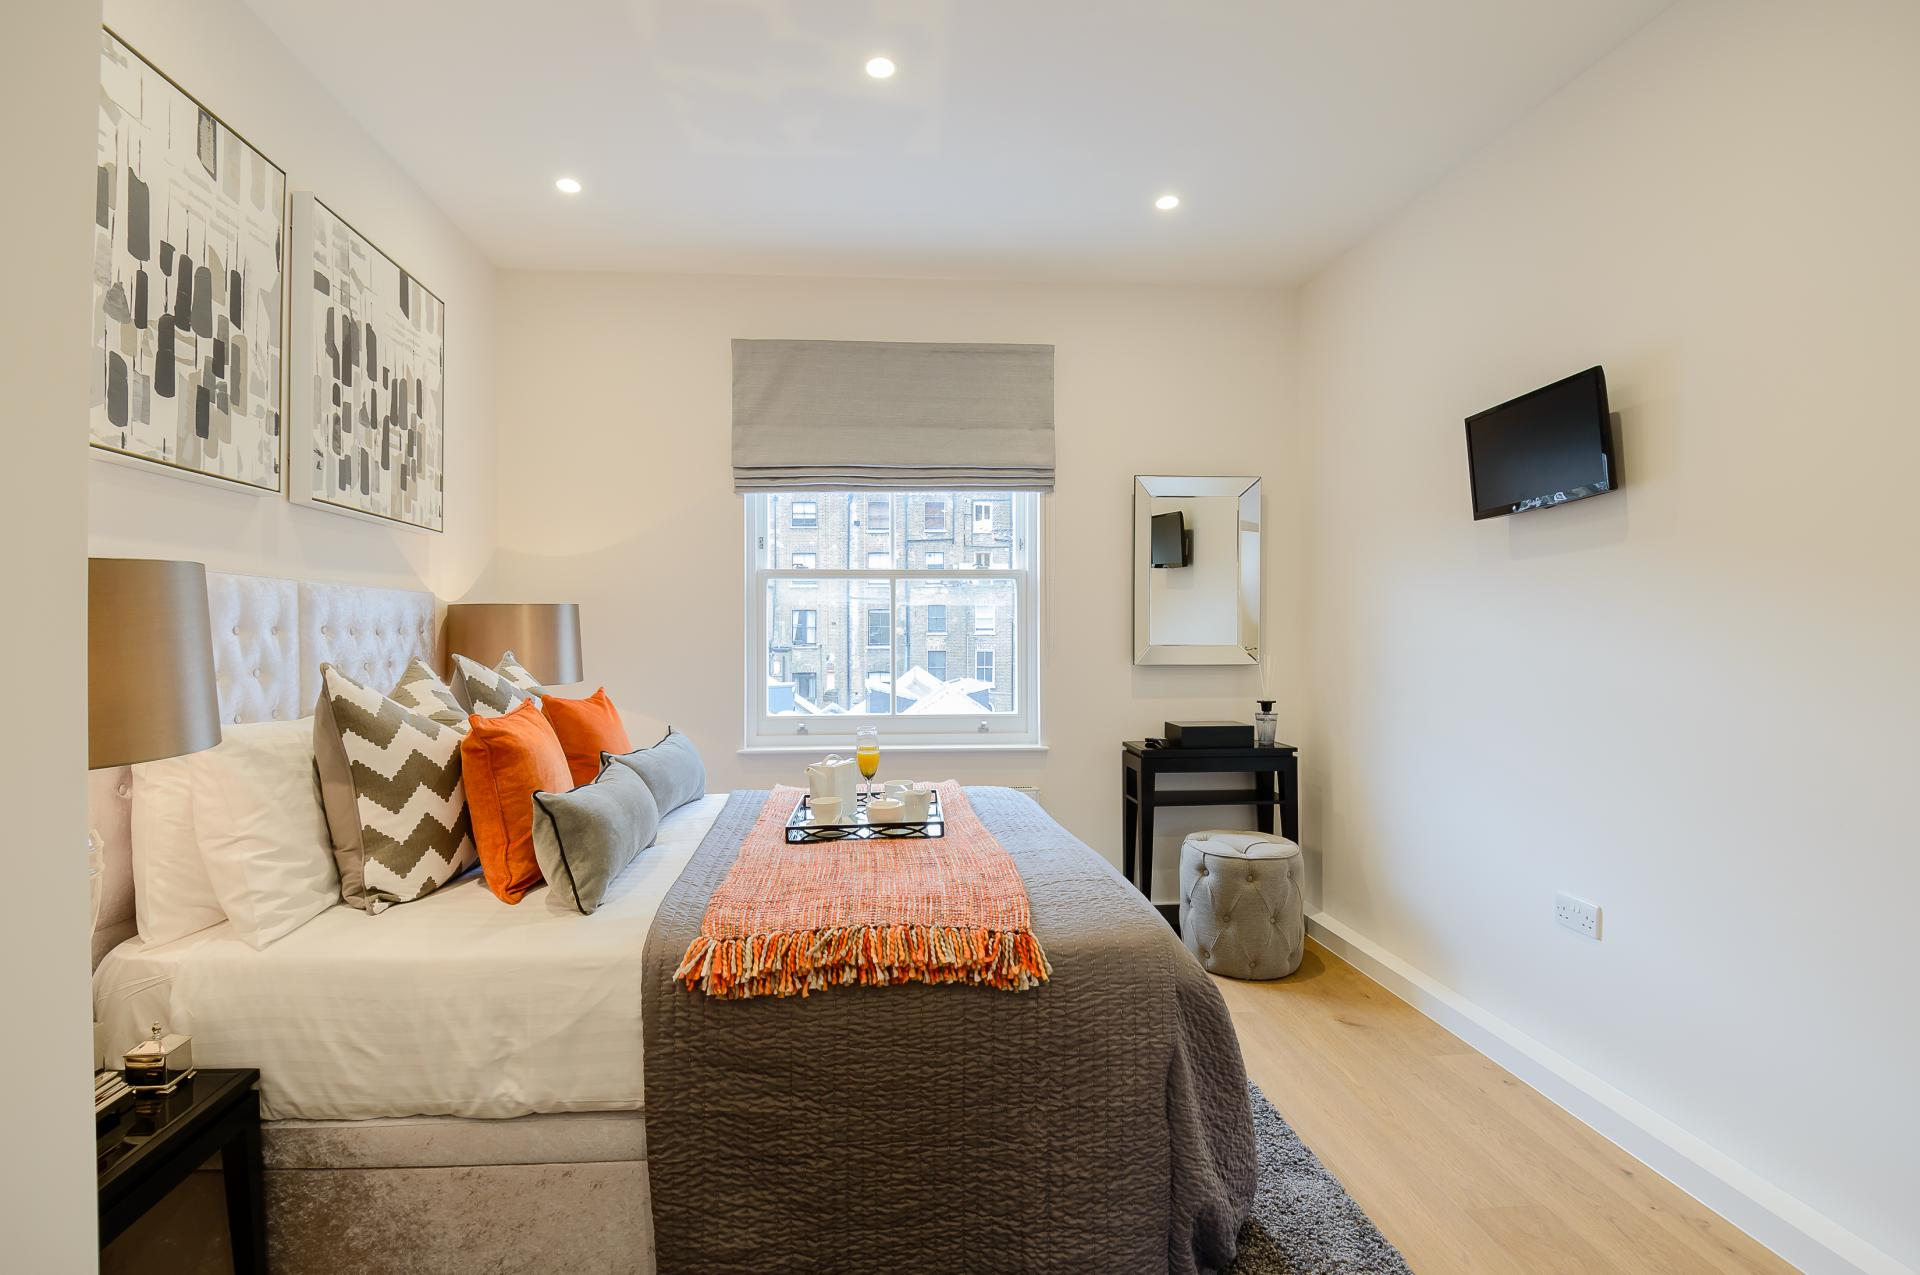 Bed at LAK Serviced Apartments, Gloucester Road, London - Citybase Apartments